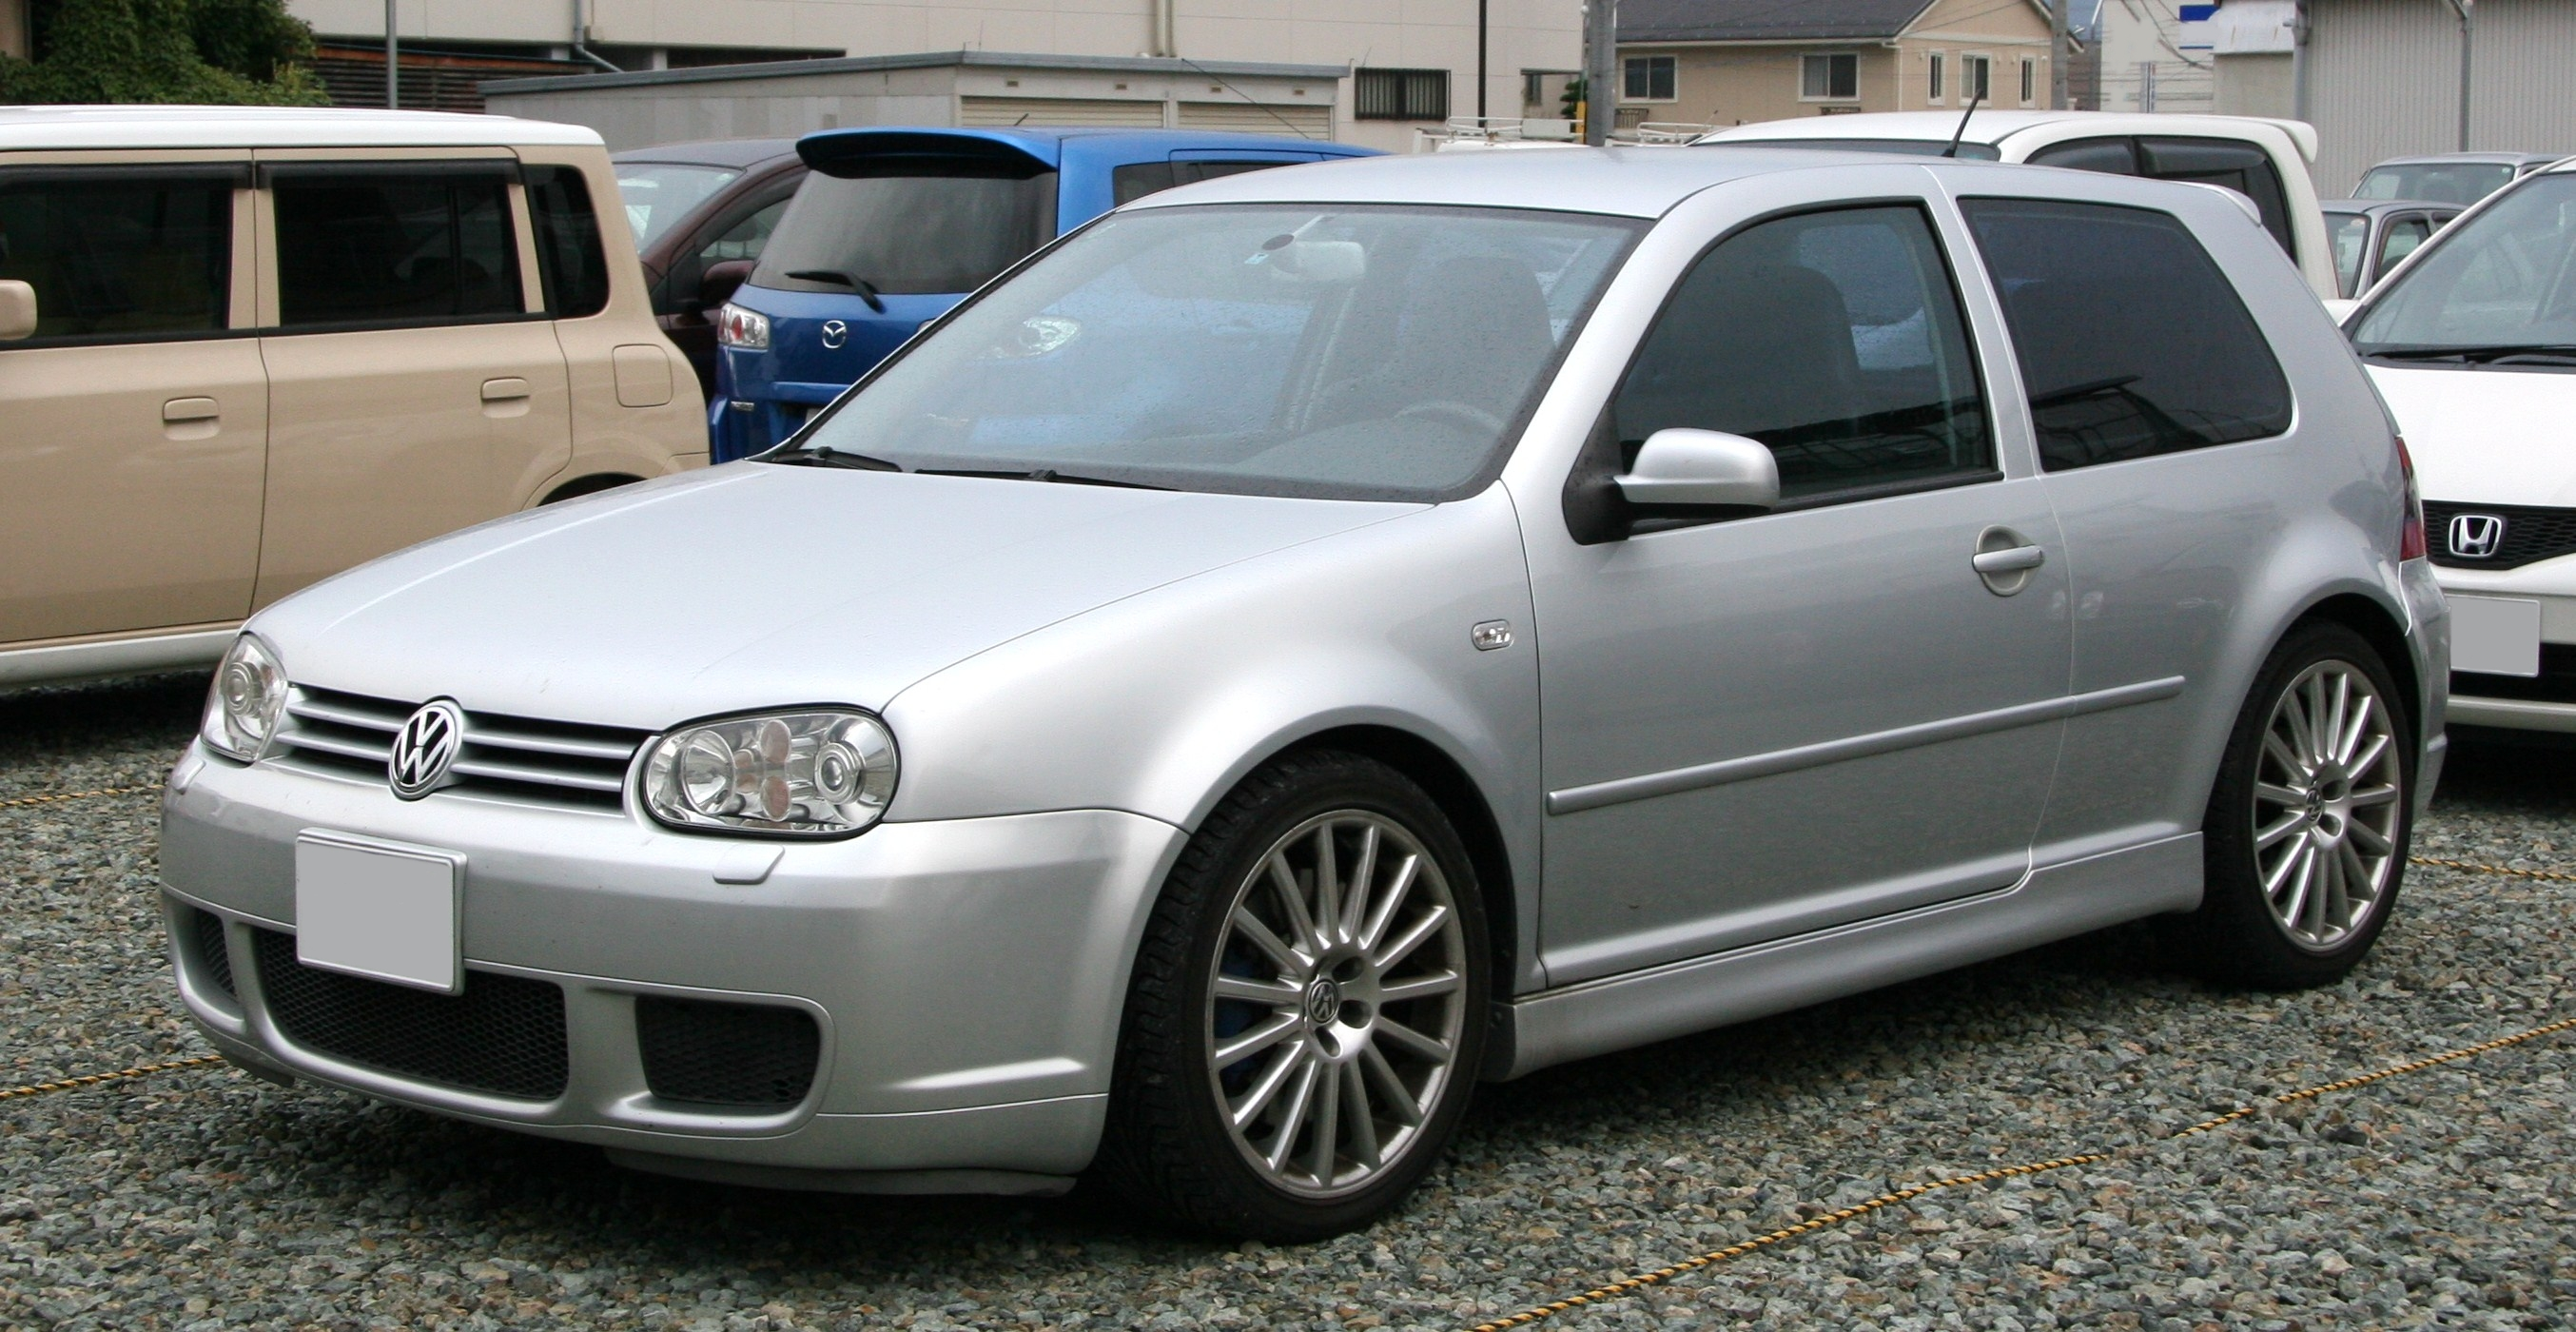 file volkswagen golf iv wikimedia commons. Black Bedroom Furniture Sets. Home Design Ideas